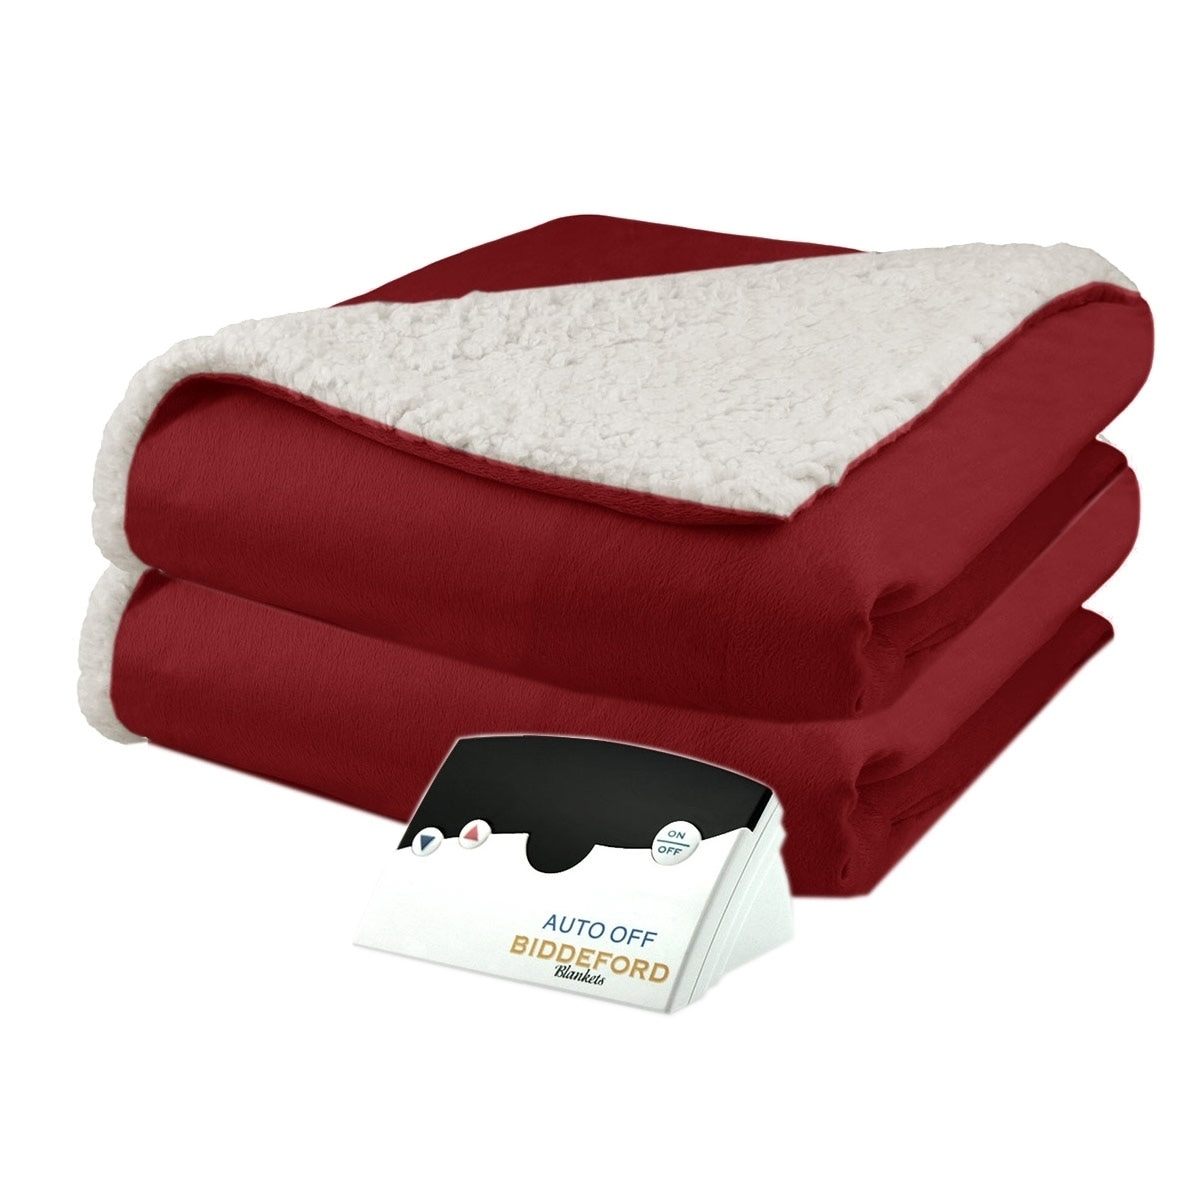 Shop Biddeford 6000 9051136 300 Micro Mink And Sherpa Heated Blanket Twin Brick Overstock 18226169